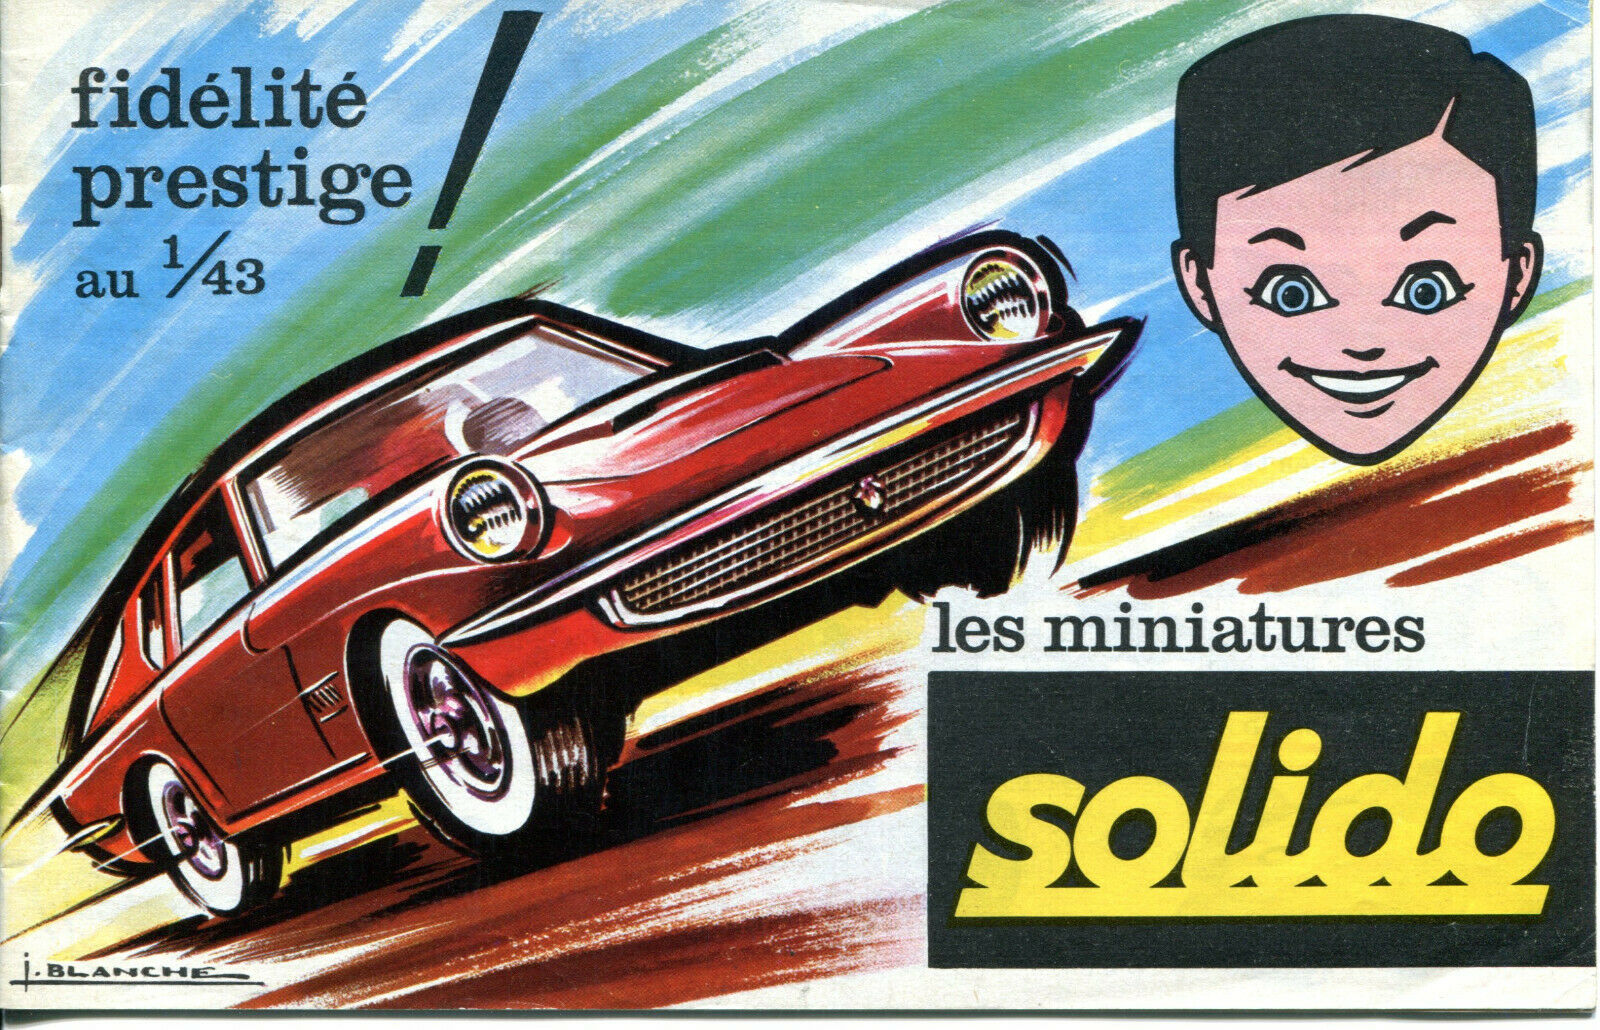 SOLIDO 1966 Catalog 1/43 Scale Models (In French and English) ULTRA-RARE!